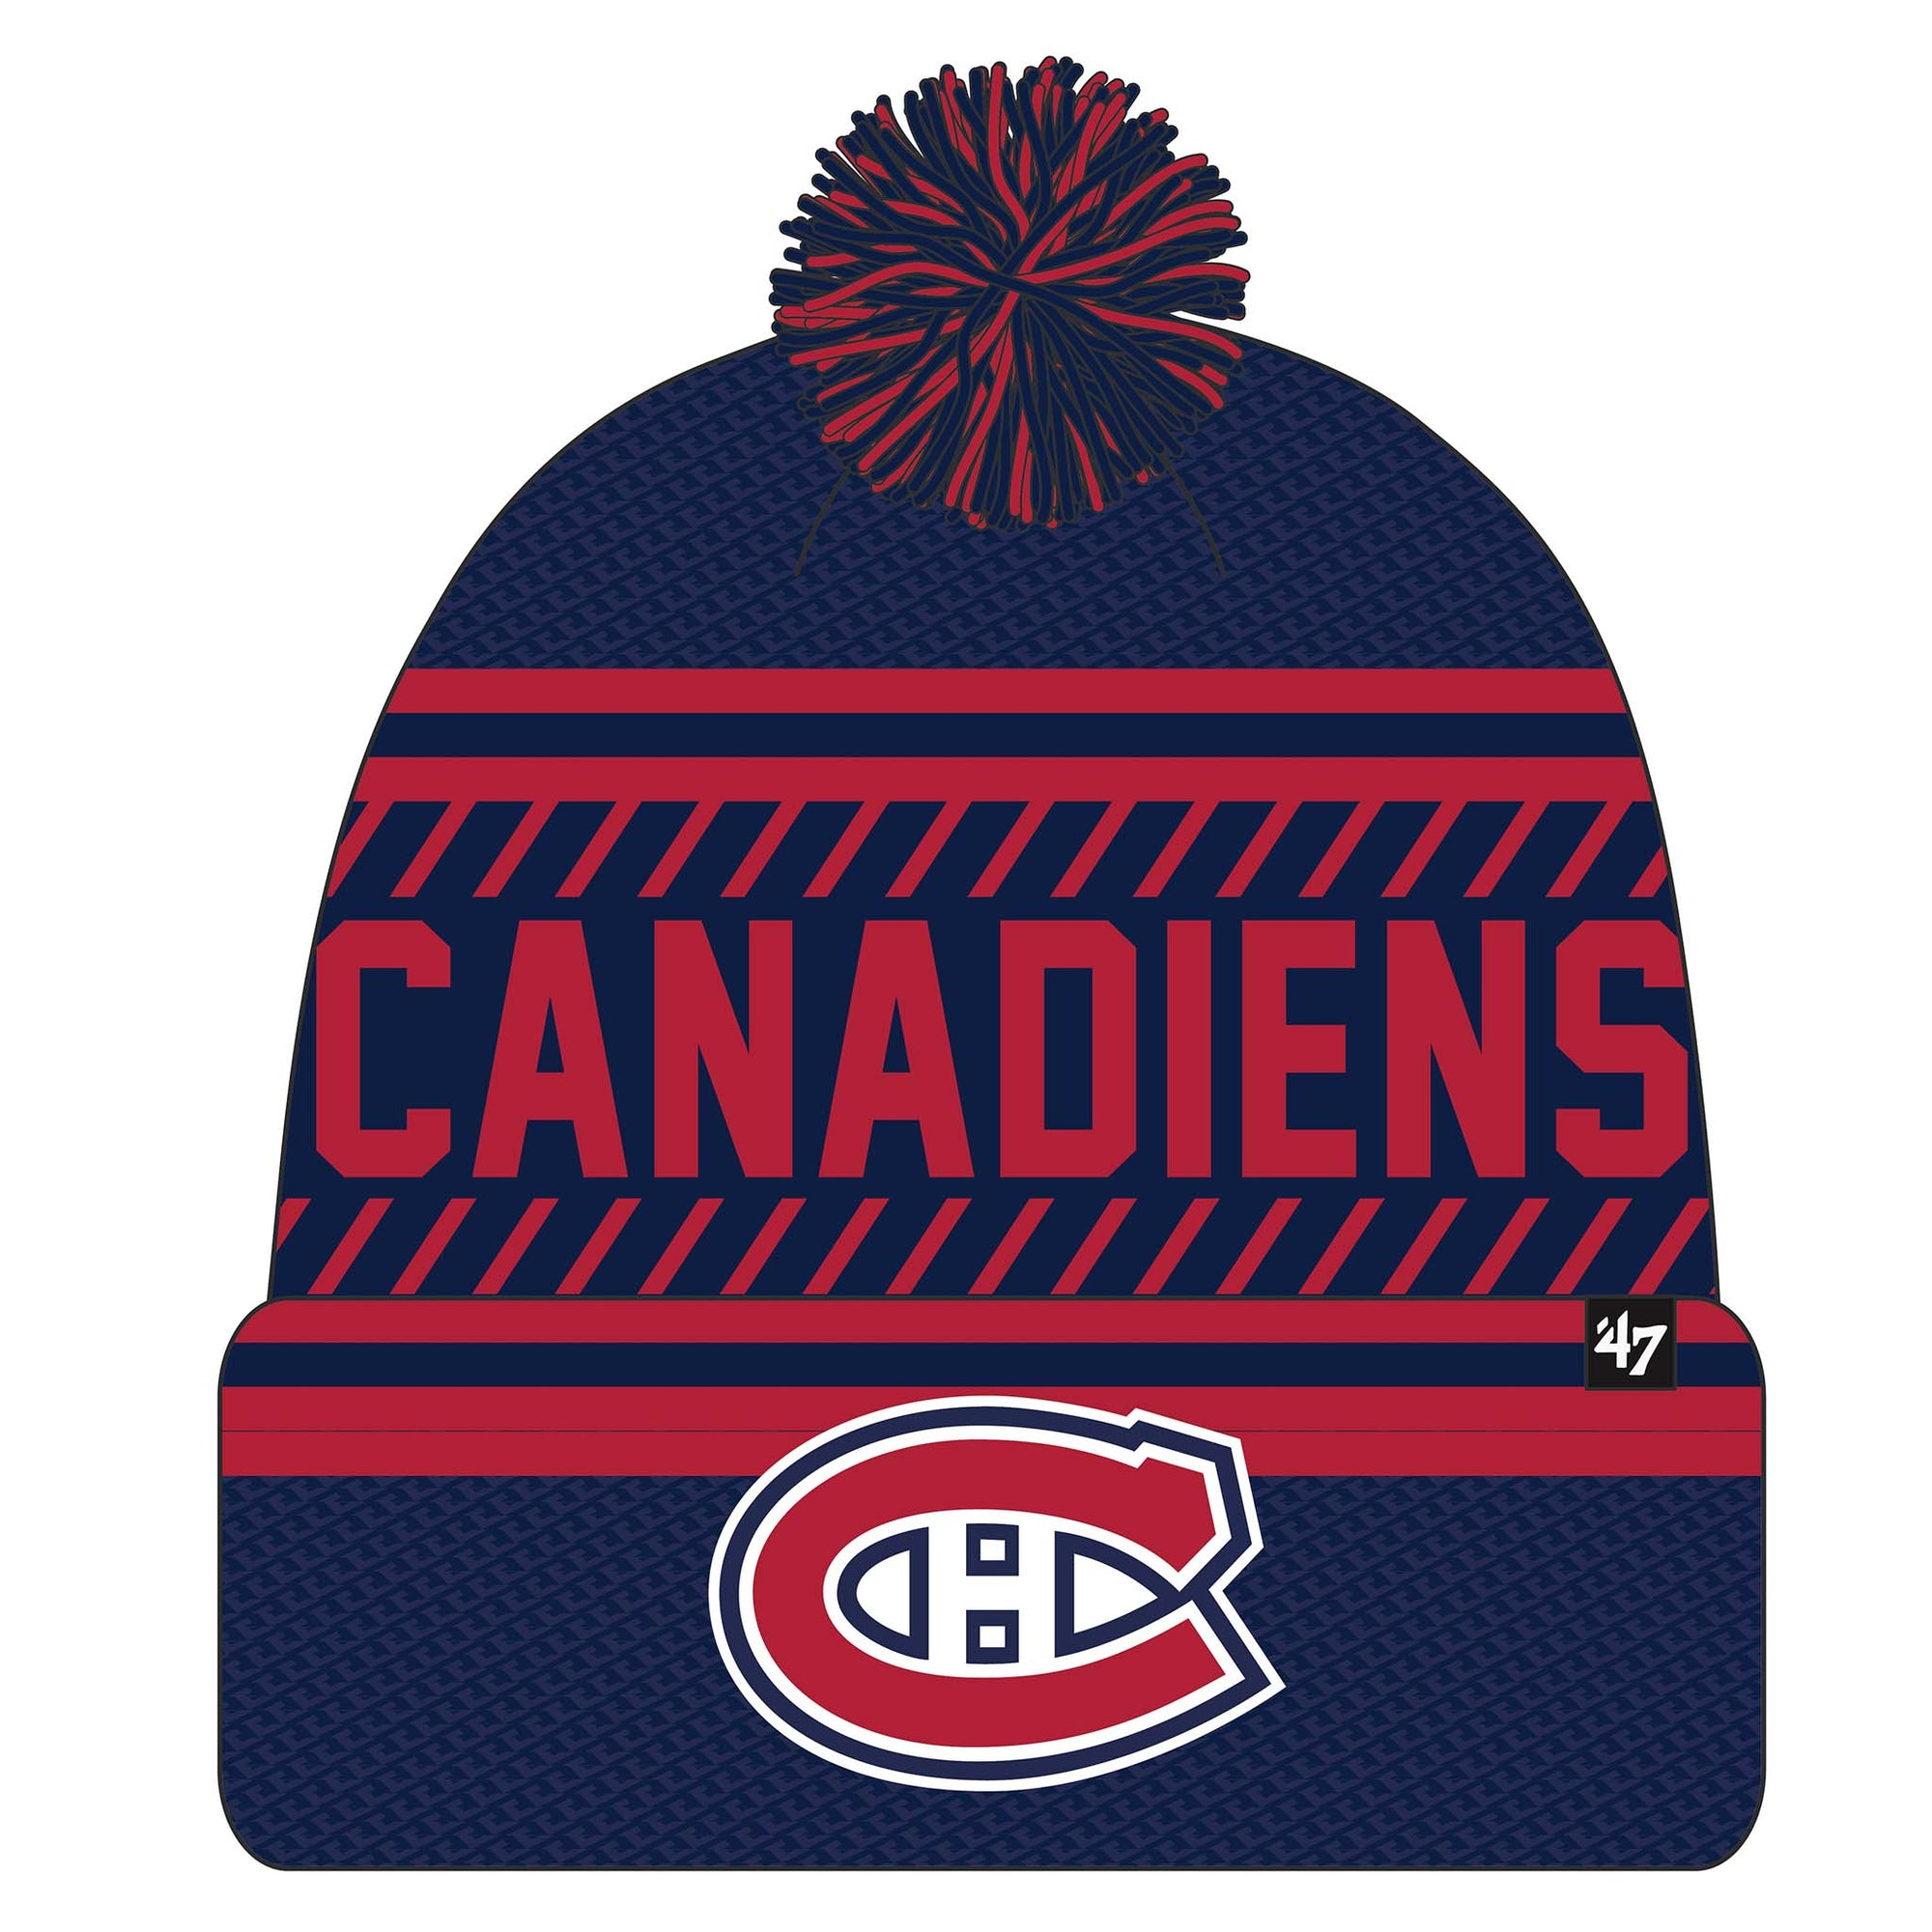 Tuque a pompon NHL ICE Canadiens de Montreal LNH 47 Brand